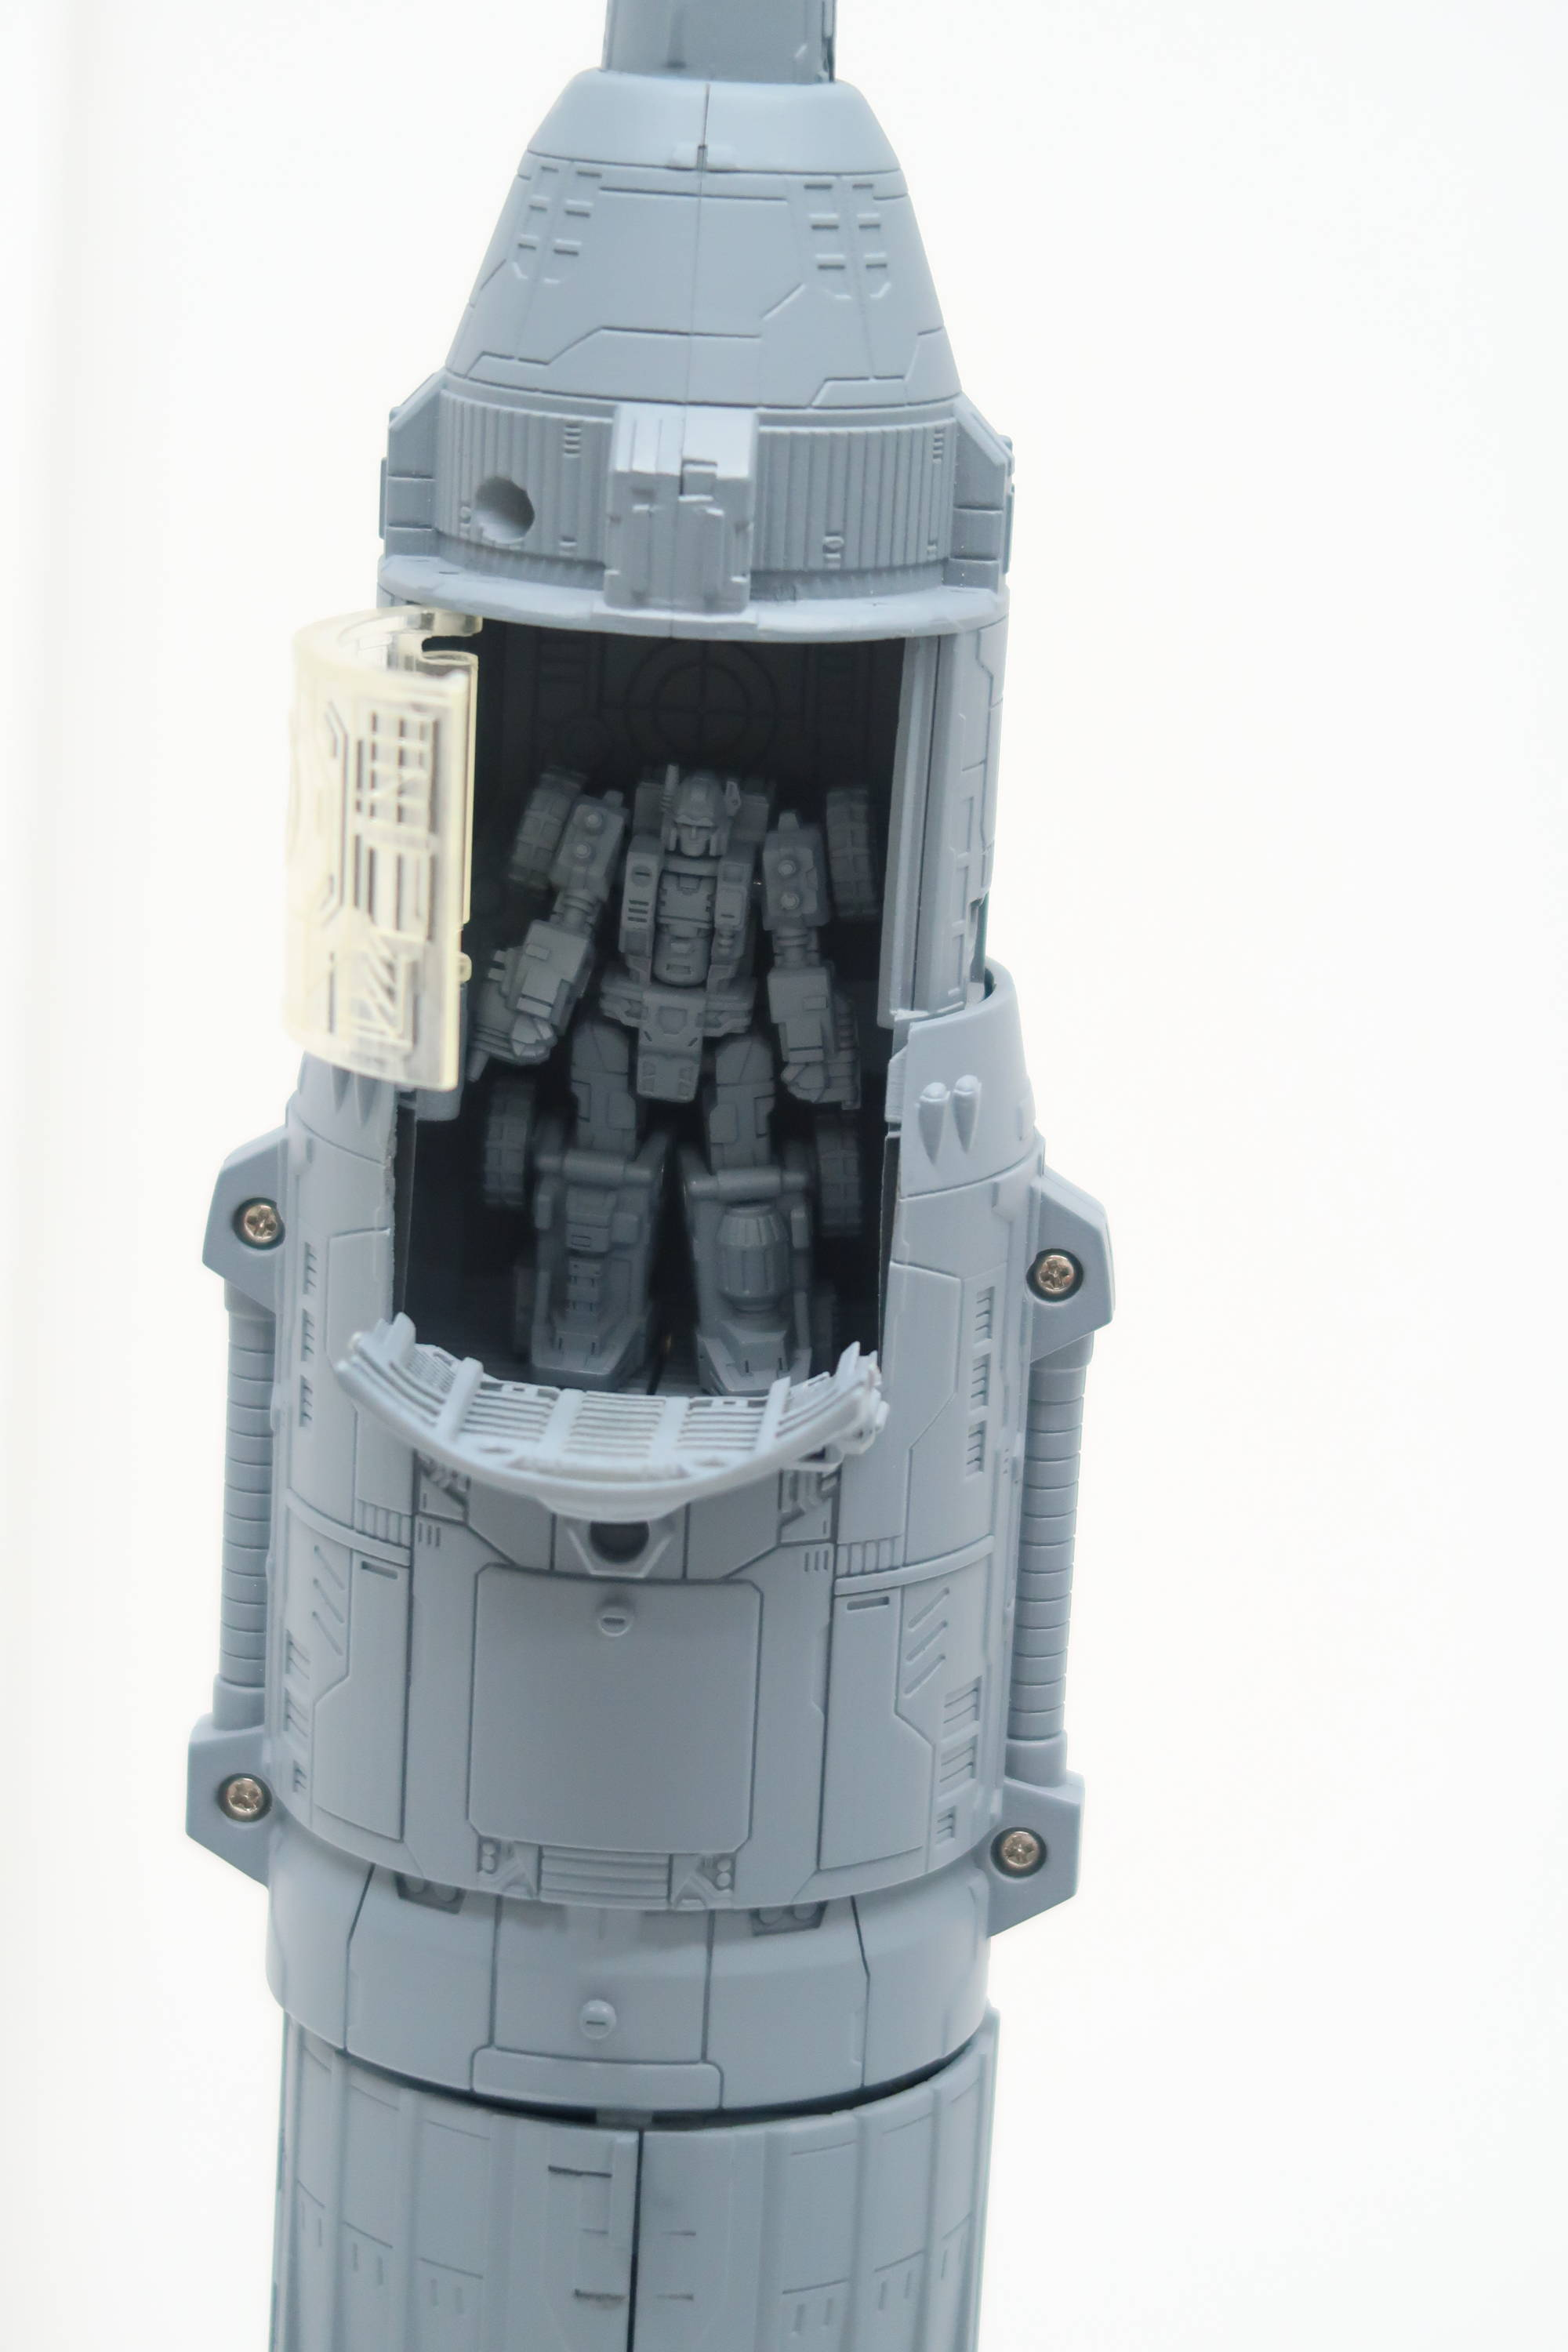 Transformers News: Interview about Siege Omega Supreme with new Image of Details and Gimmicks